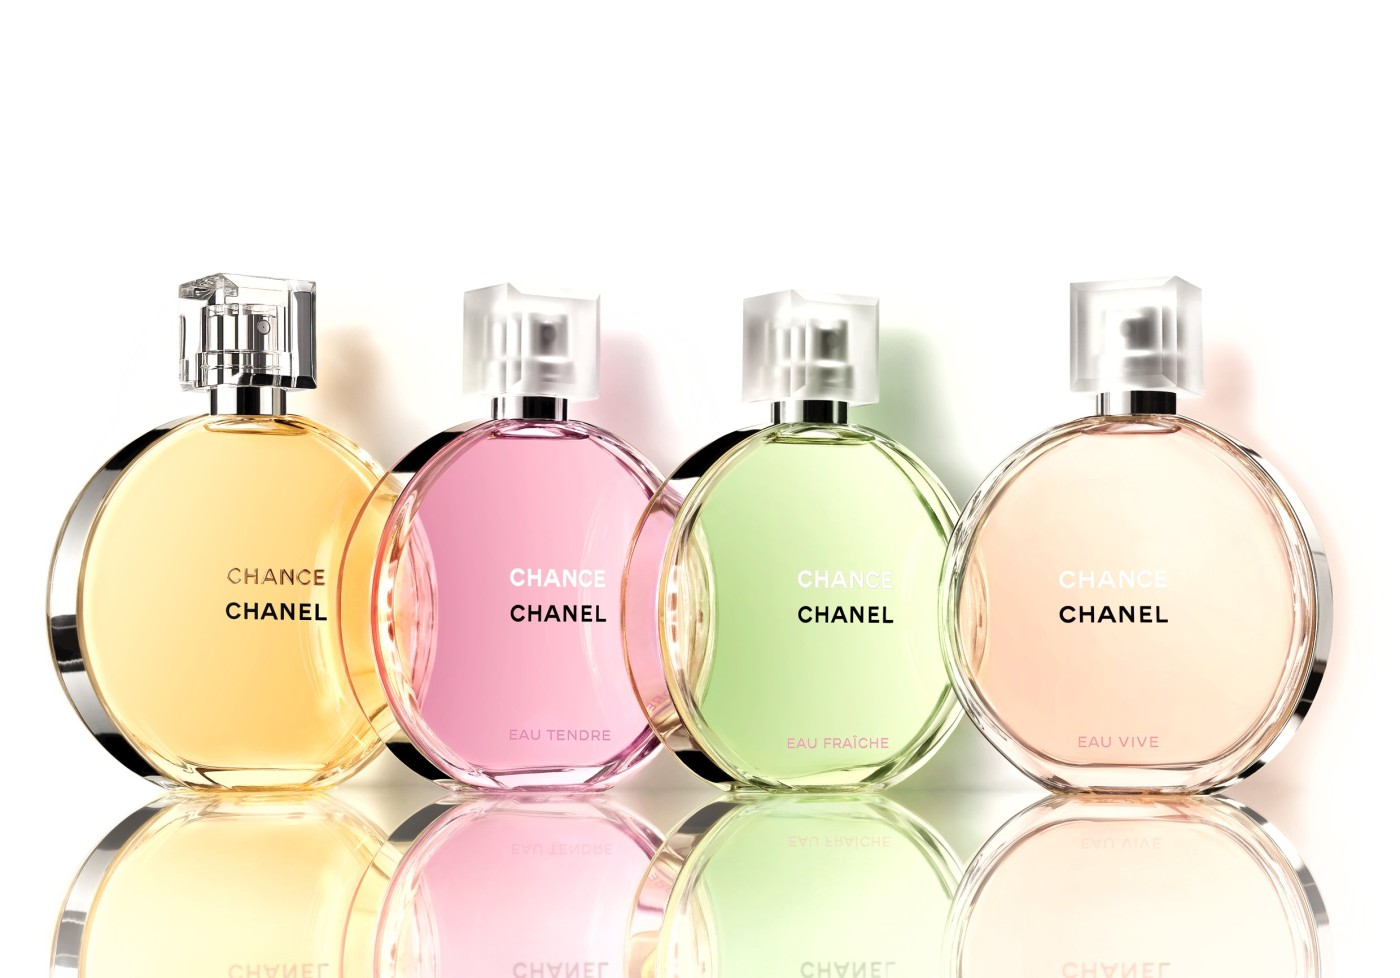 chance eau vive chanel parfum un nouveau parfum pour femme 2015. Black Bedroom Furniture Sets. Home Design Ideas